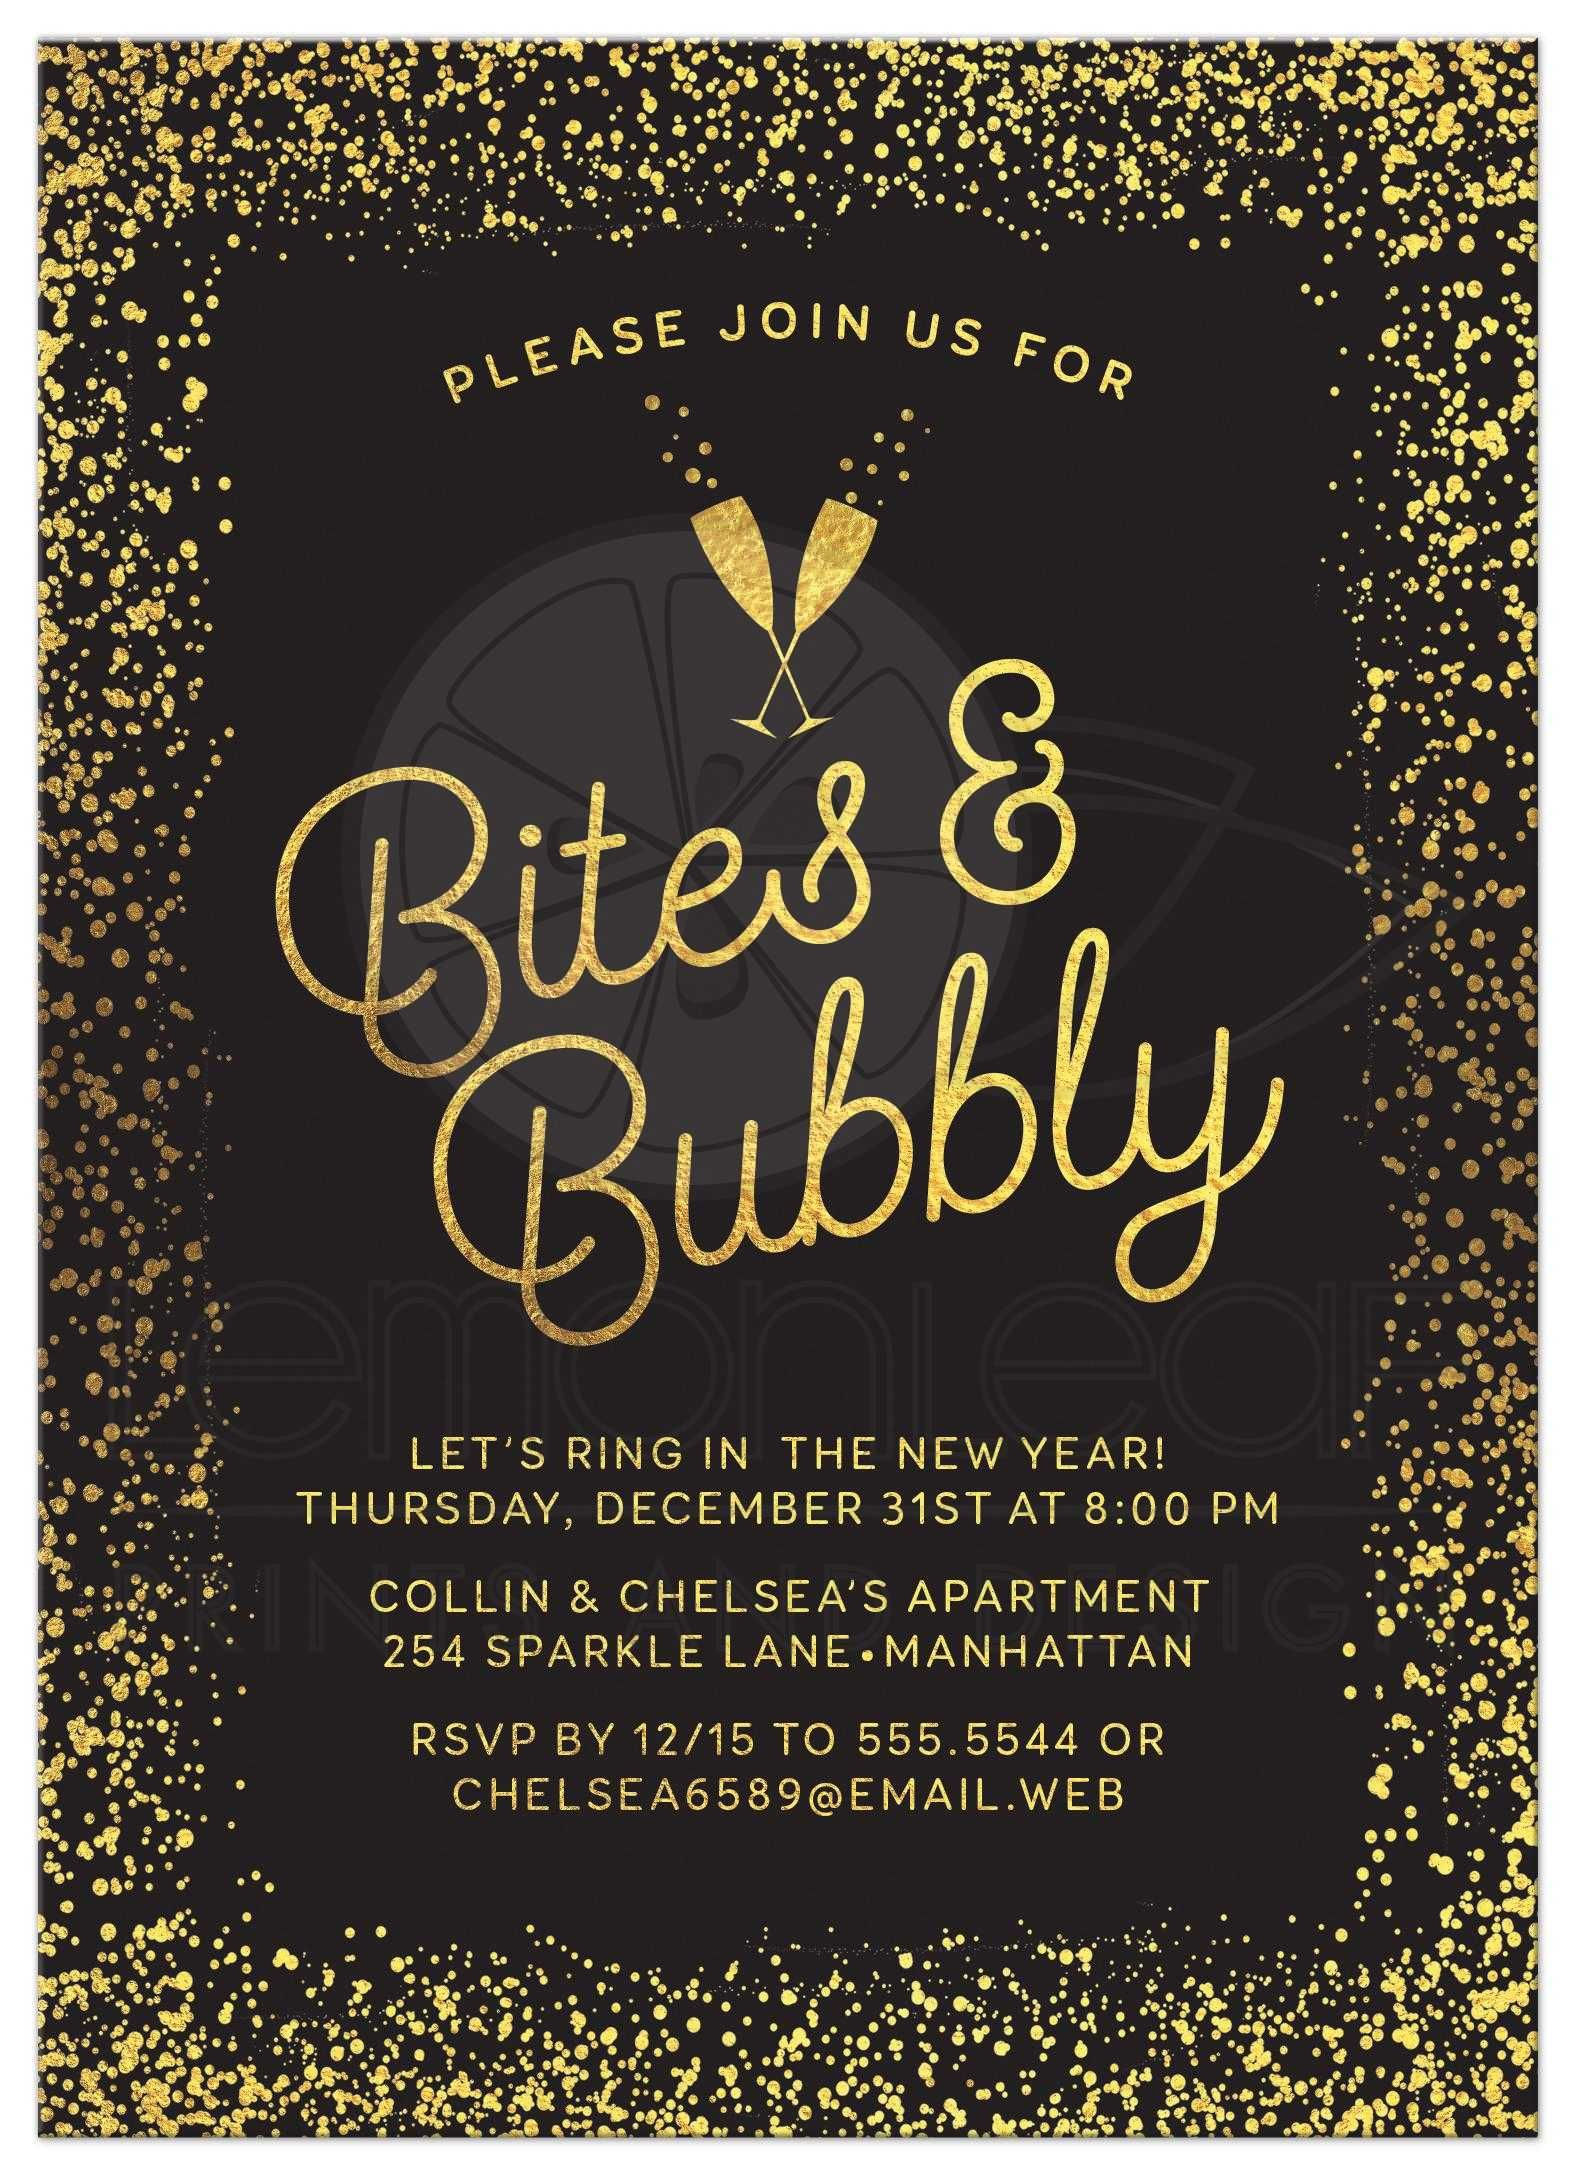 New Years Eve Party Invitations New Years Eve Invitations Party Invite Template New Years Eve Party